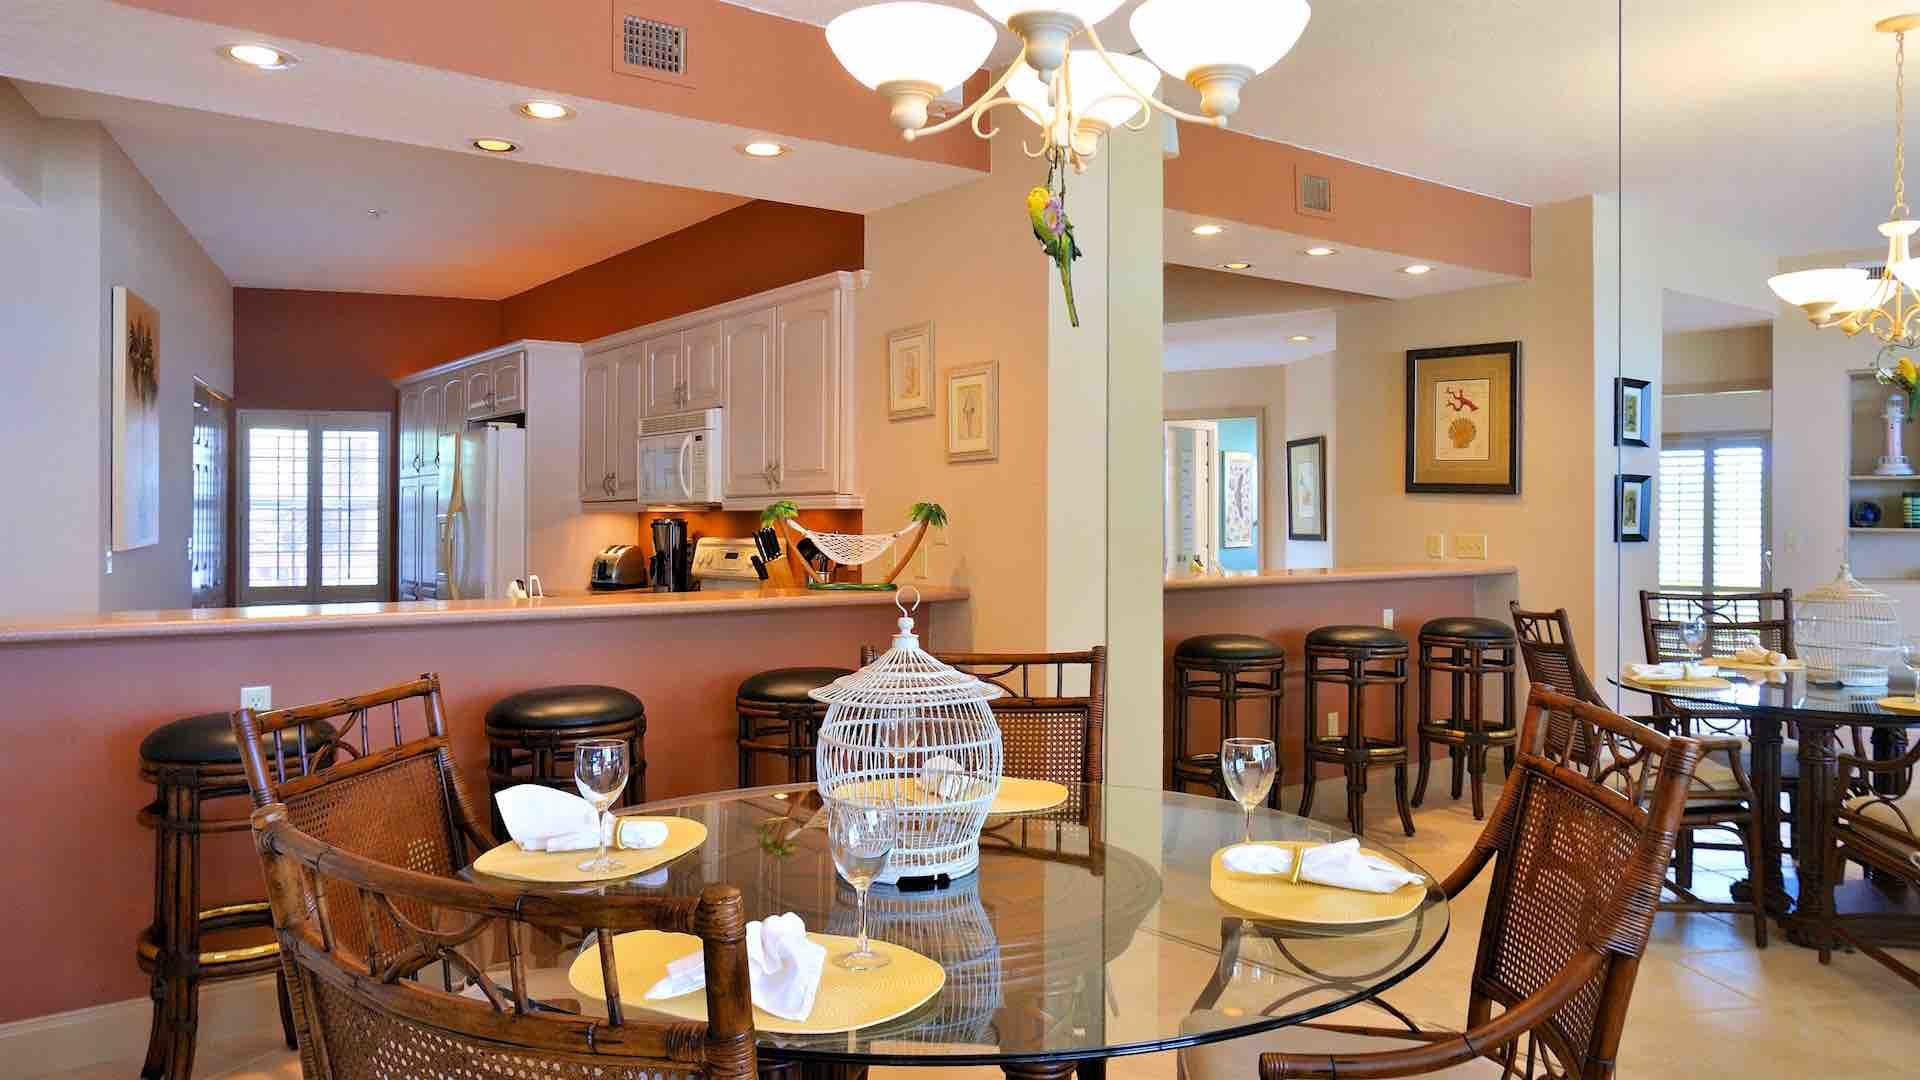 The indoor dining table seats four comfortably and there's additional seating at the kitchen bar...